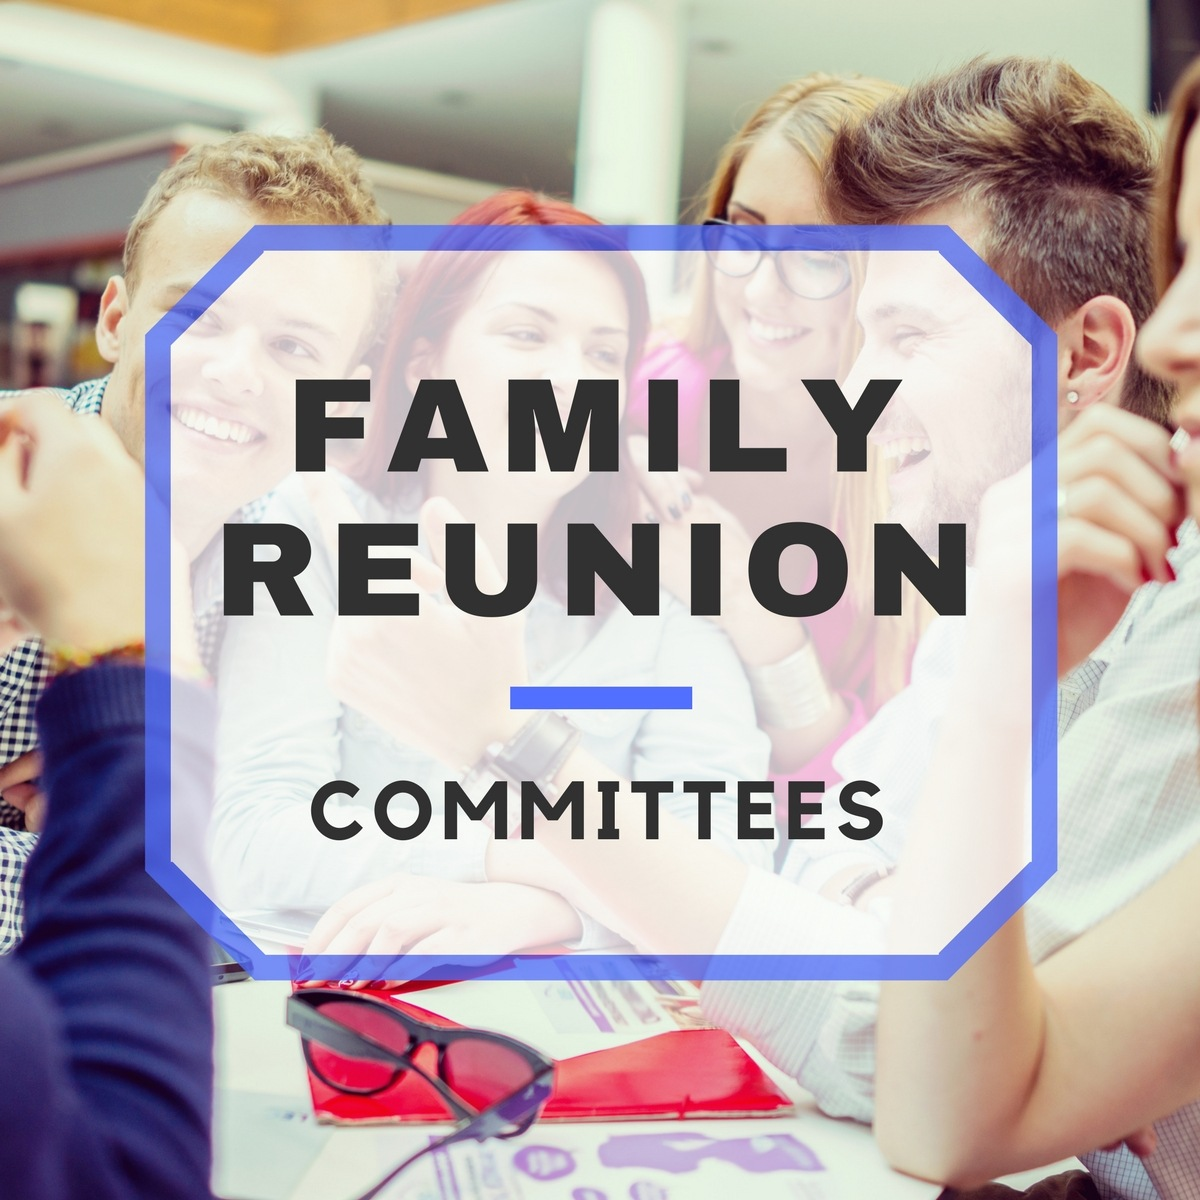 Worksheet Family Reunion Committee